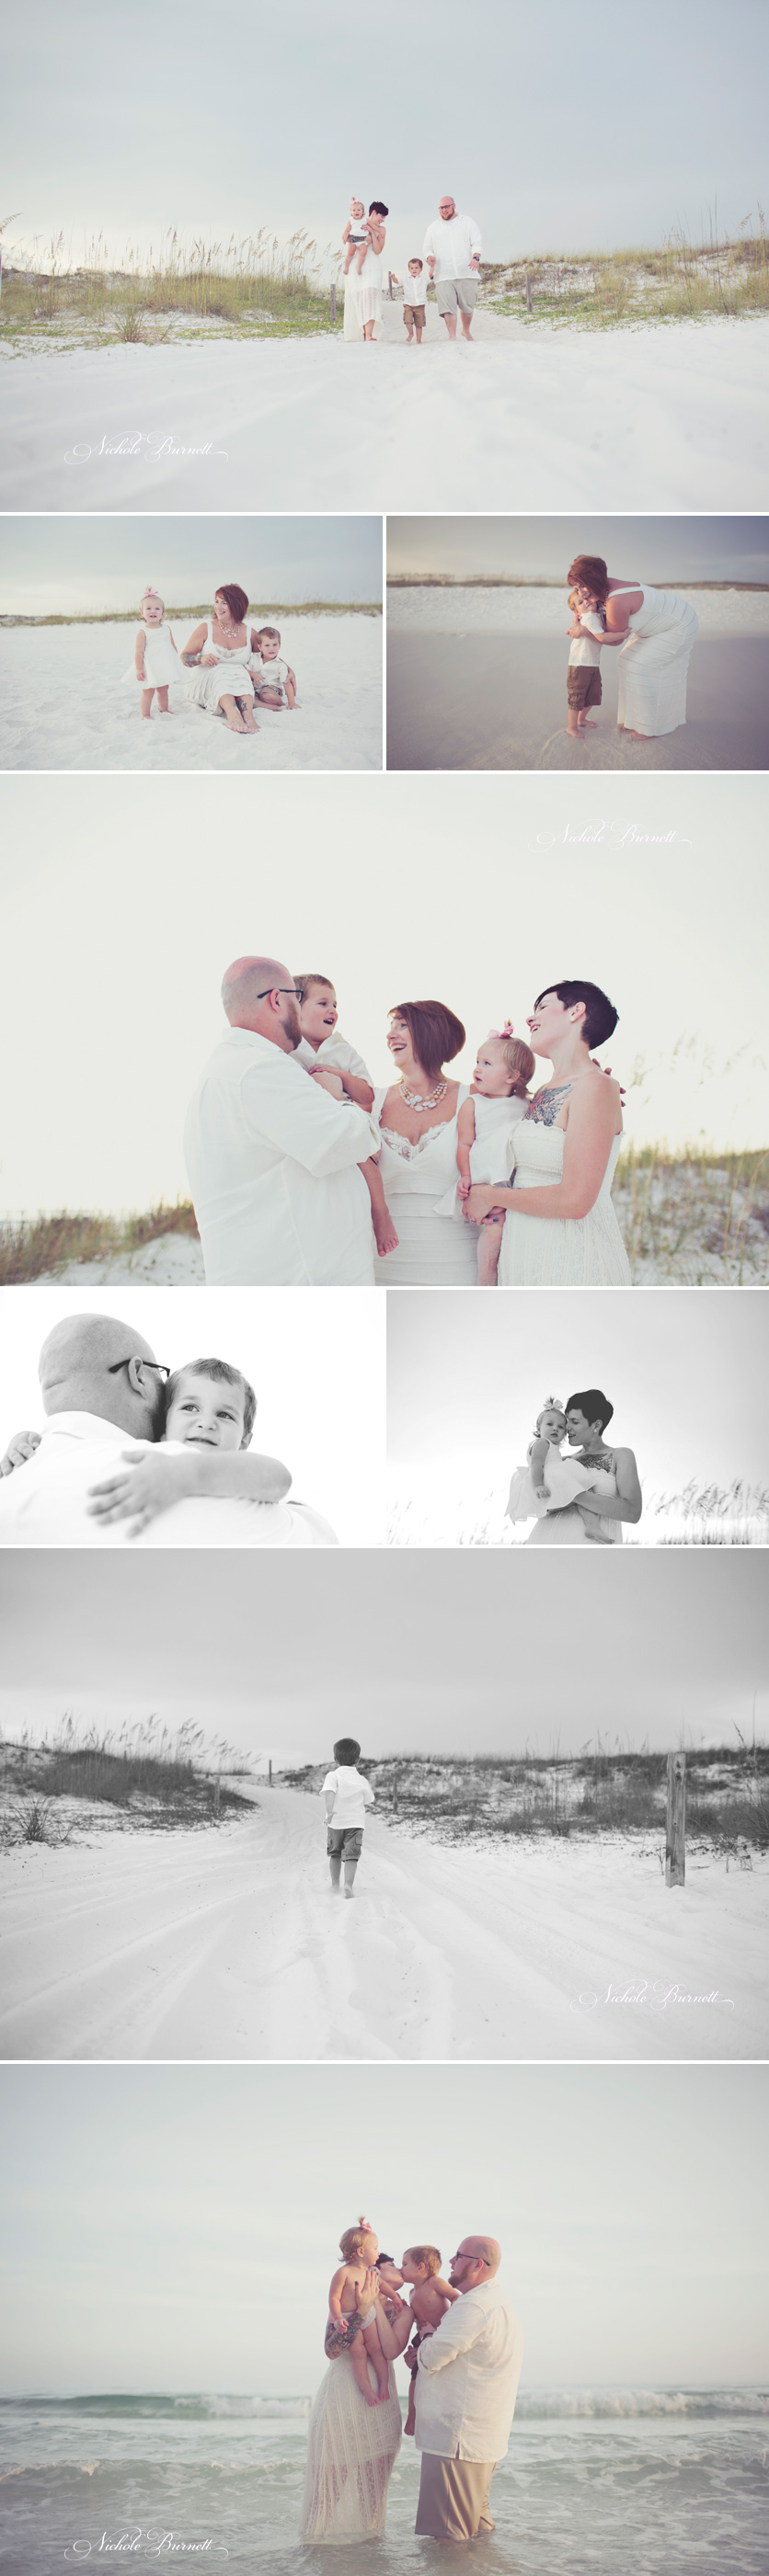 Family Photography Session in Destin Florida